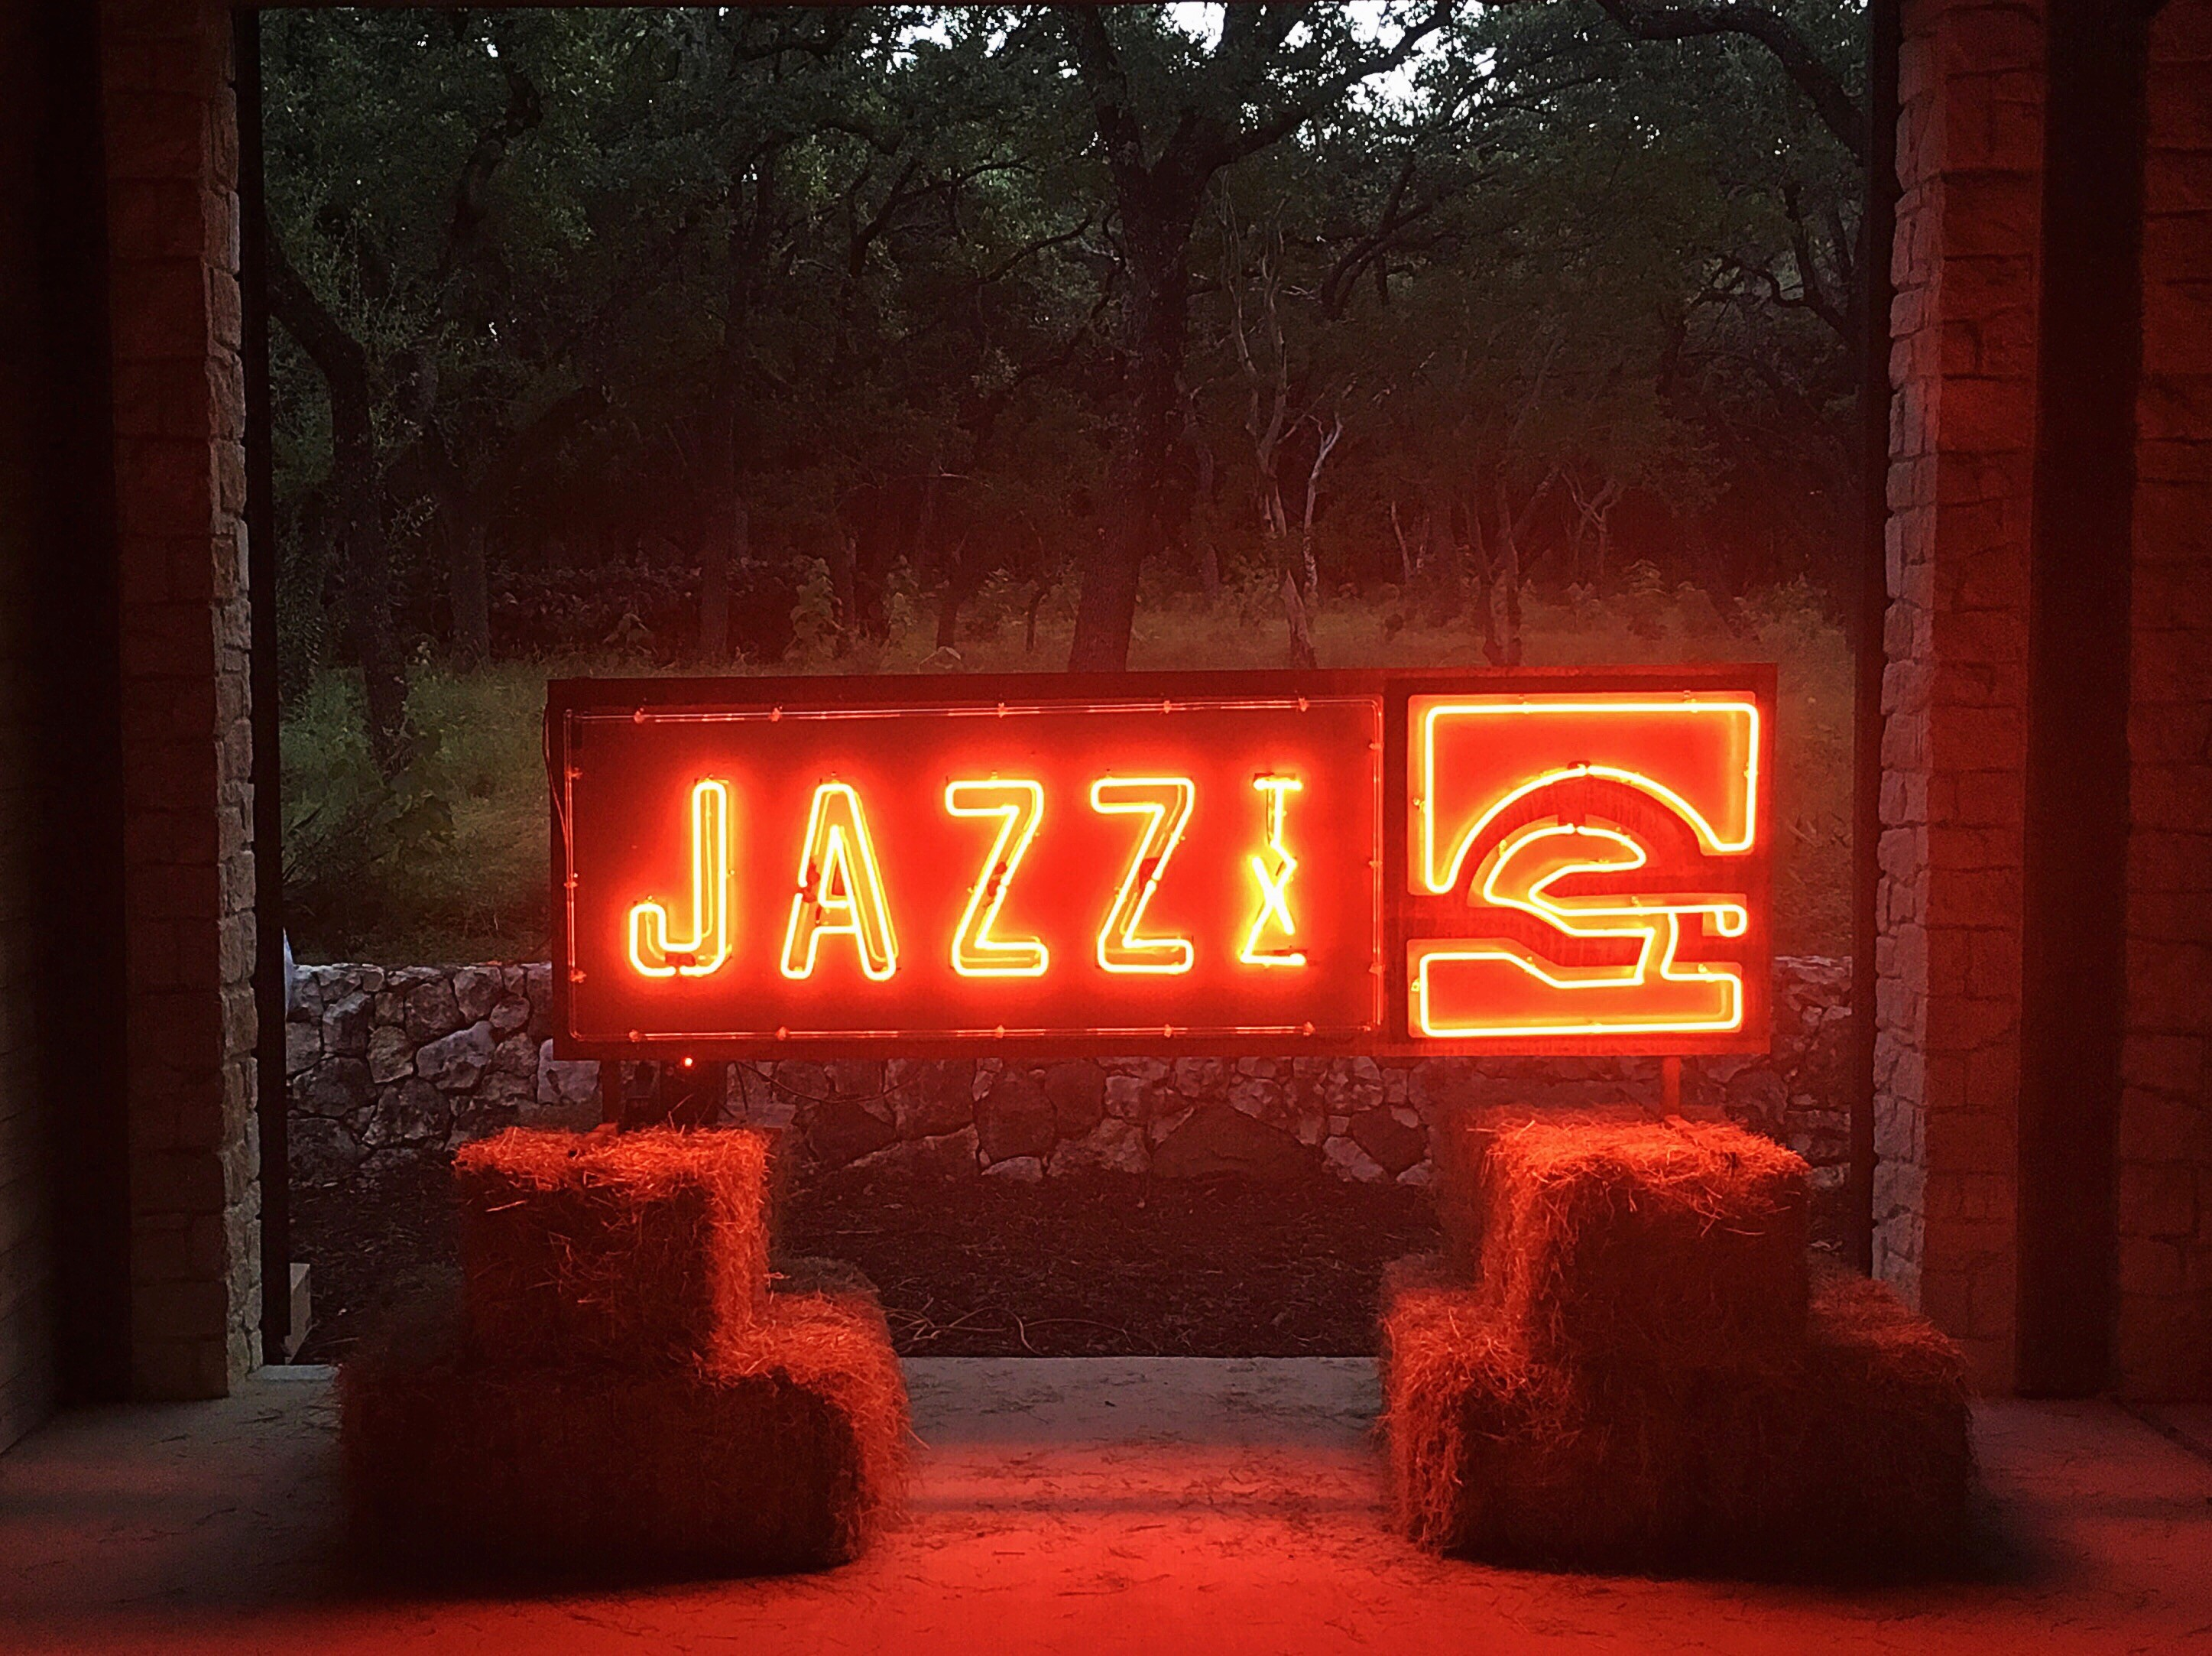 Jazz tx preview what 39 s in store for the pearl 39 s upcoming for Jazz house music